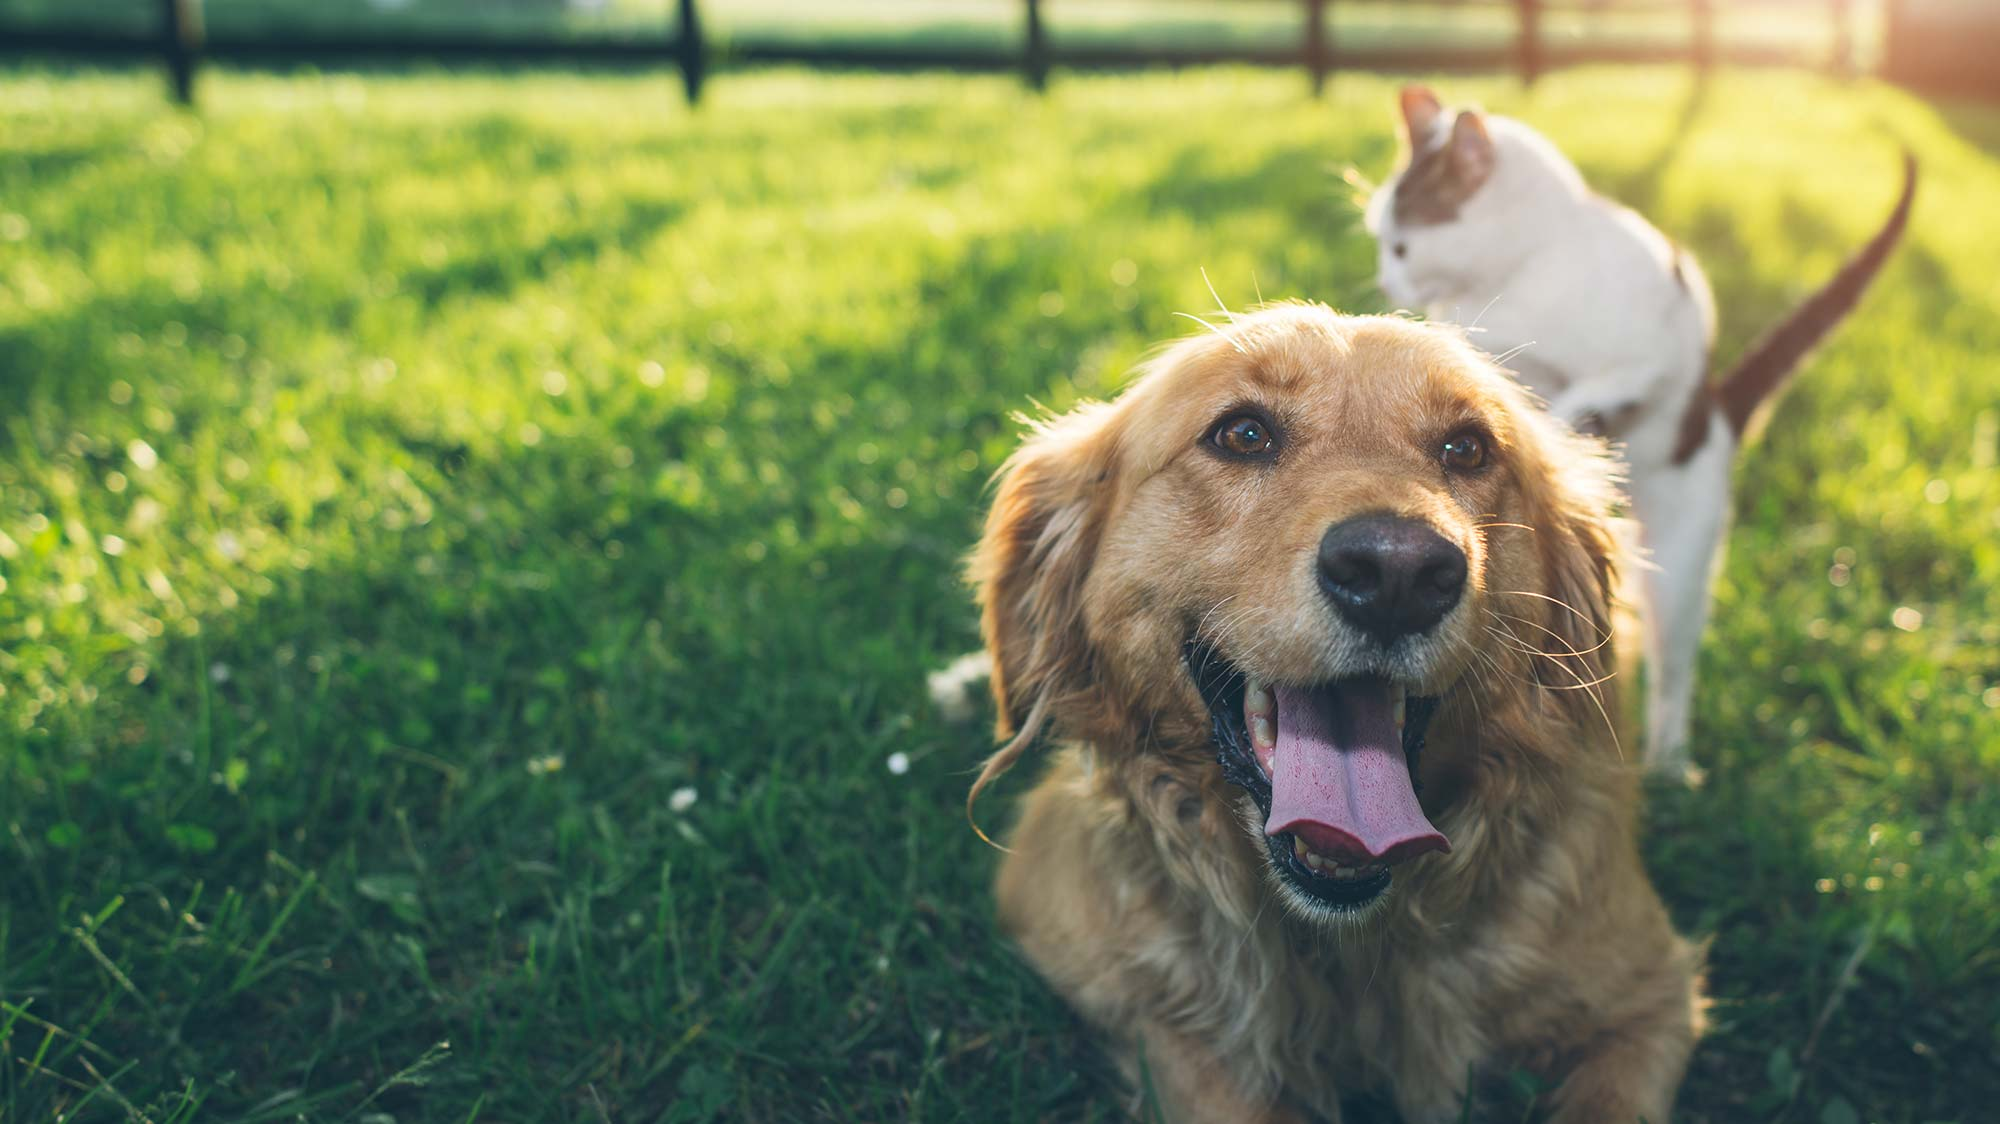 Review Our West Knoxville TN Veterinarians